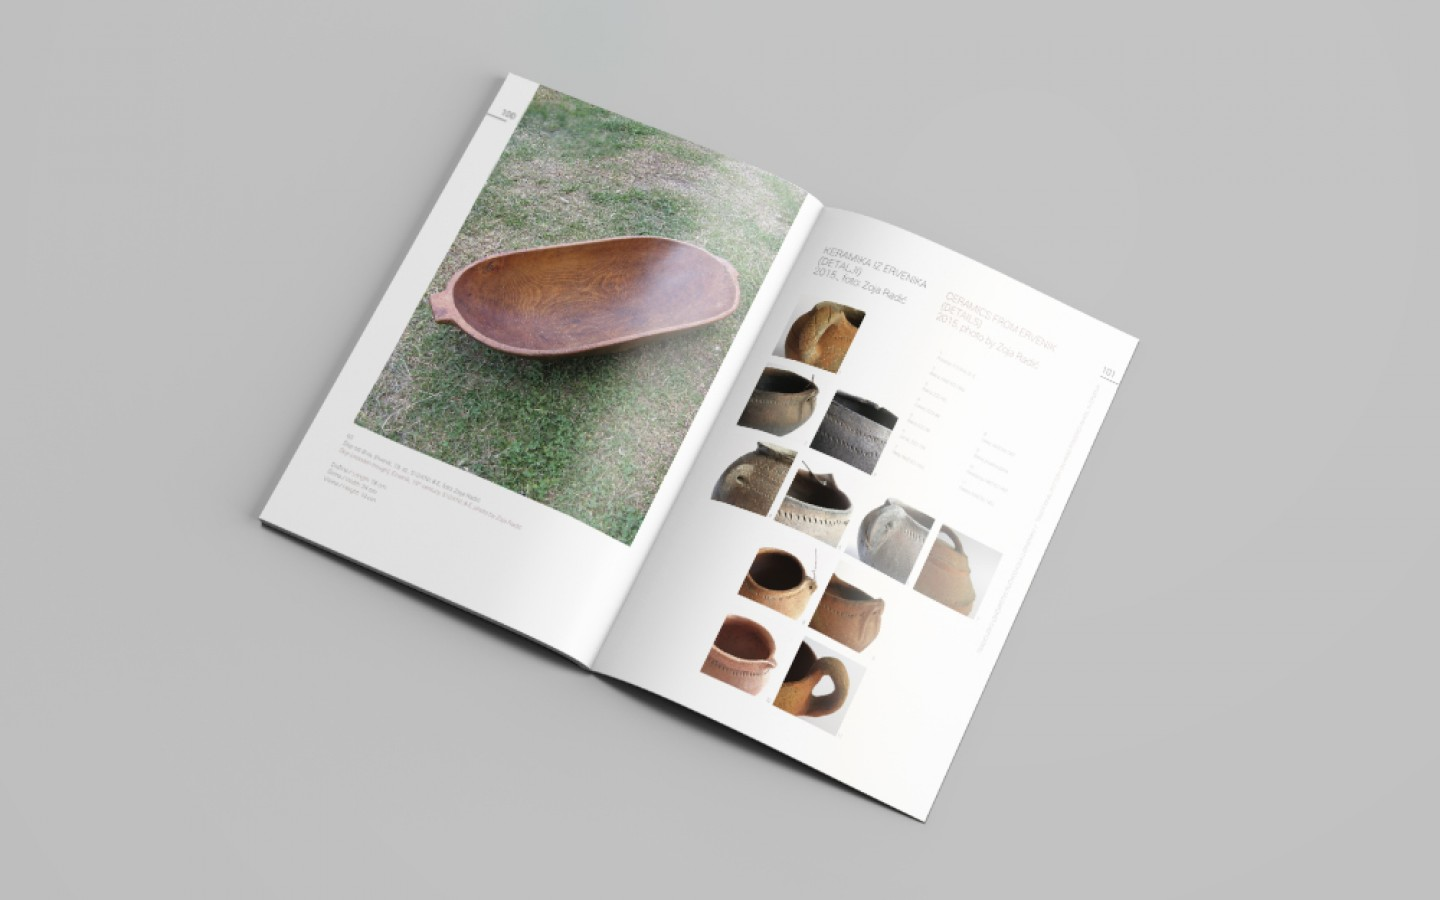 CATALOGUE DESIGN - TRADITIONAL POTTERY